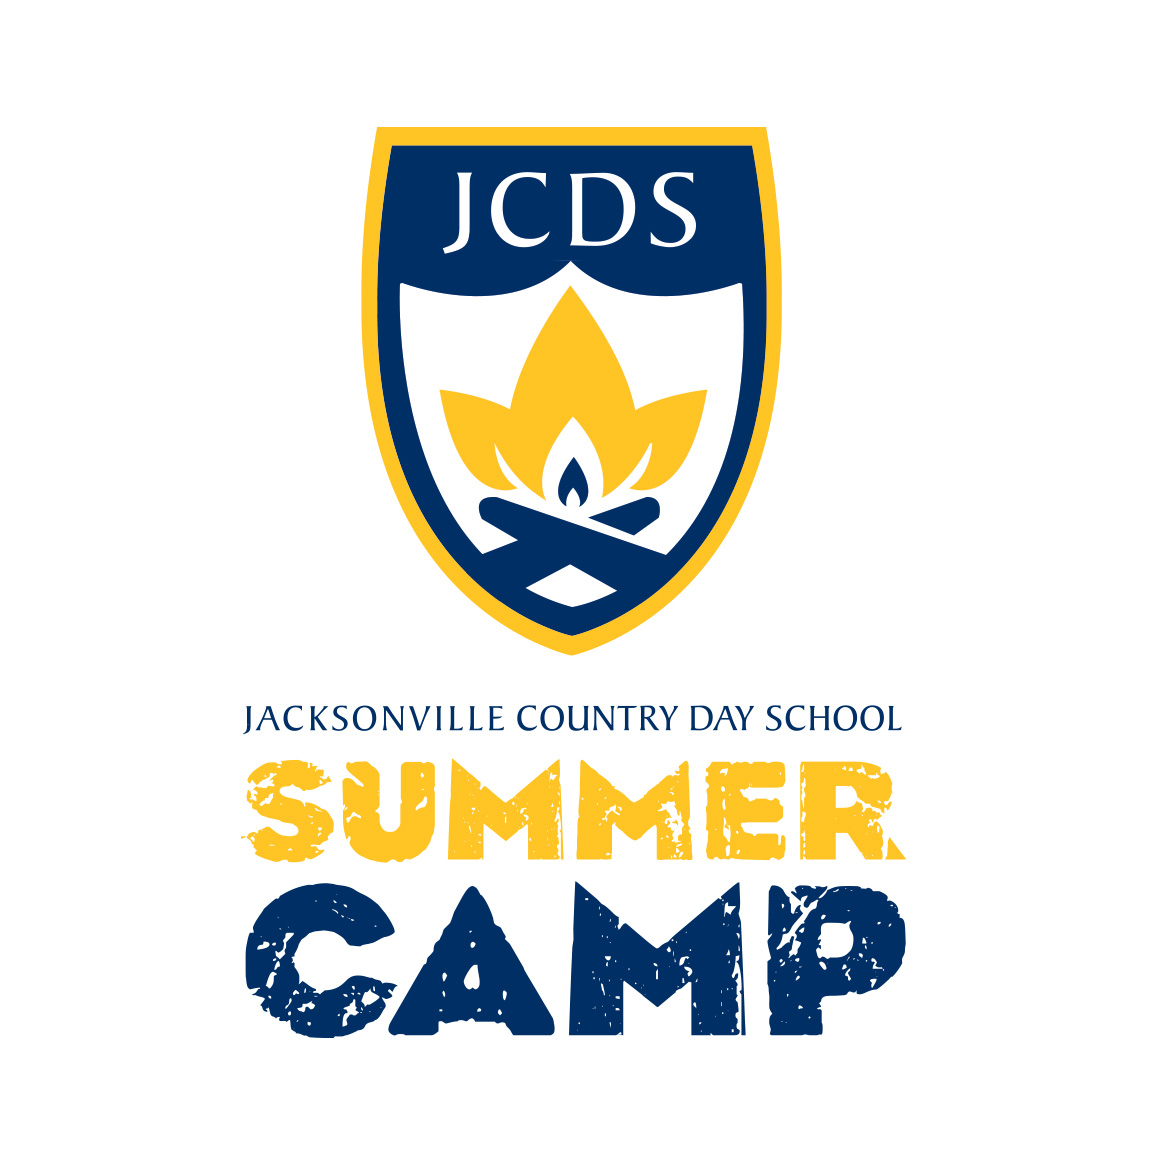 Jacksonville Country Day School Summer Camp logo